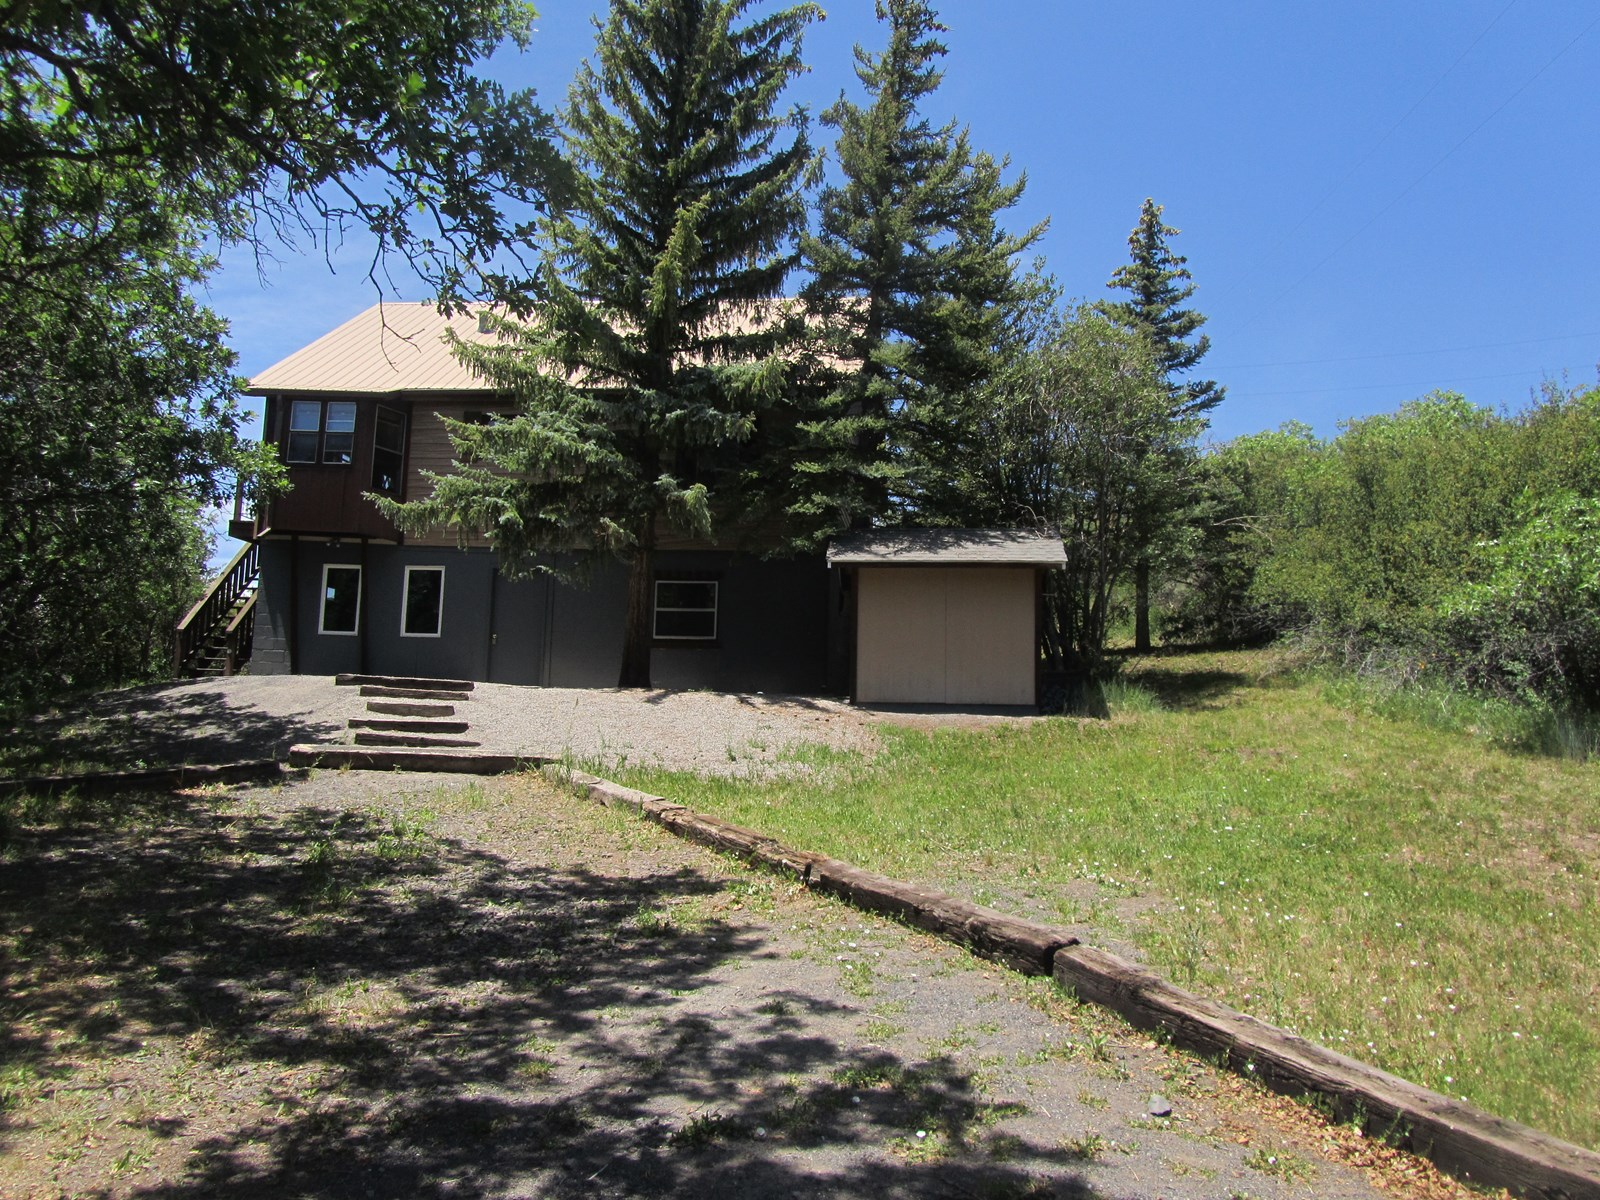 Cabin Property Near Lake For Sale in Colorado